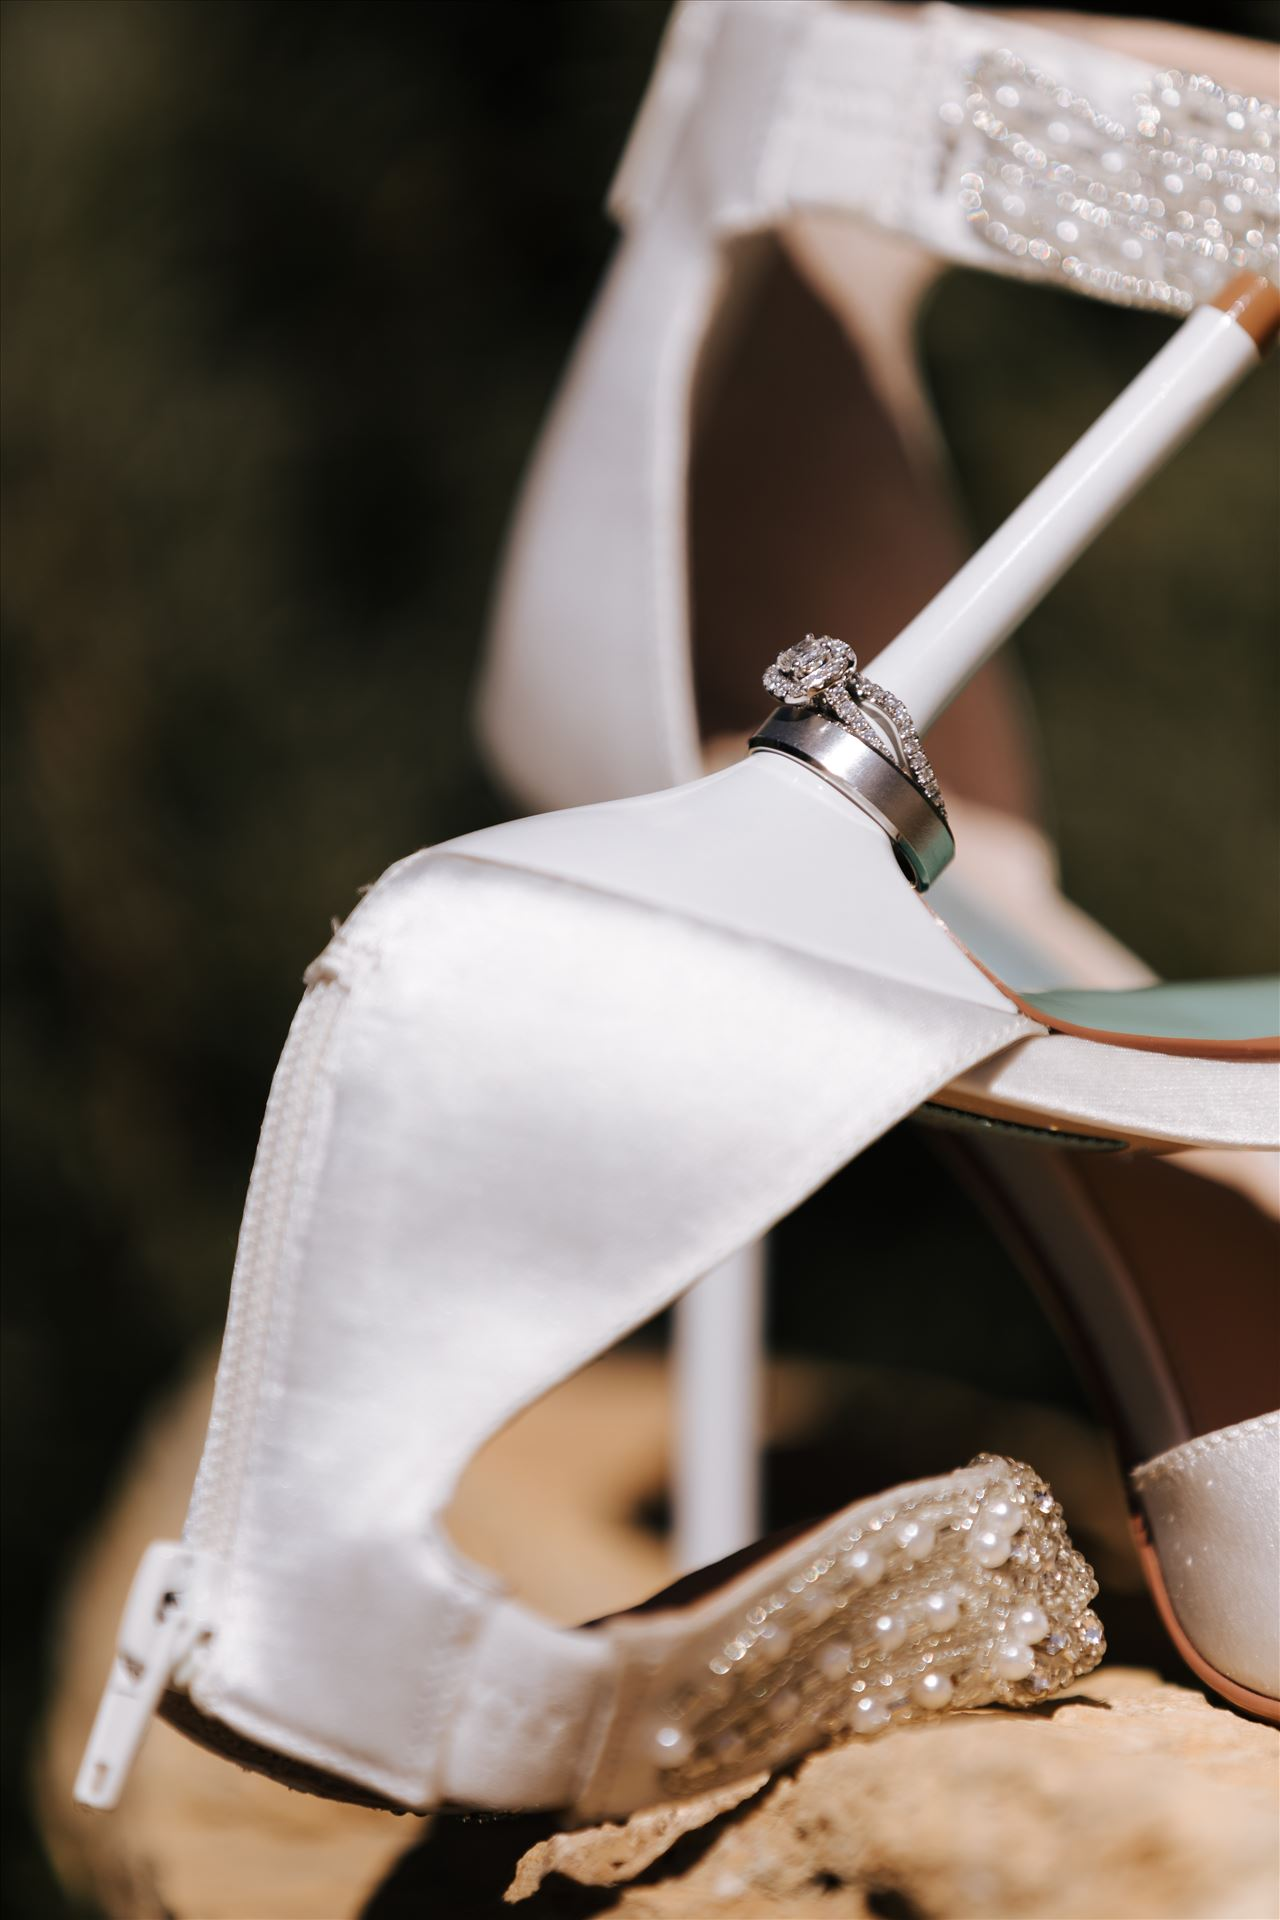 _Y9A6433.JPGTooth and Nail Winery elegant and formal wedding in Paso Robles California wine country by Mirror's Edge Photography, San Luis Obispo County Wedding Photographer. Bridal shoes and wedding rings